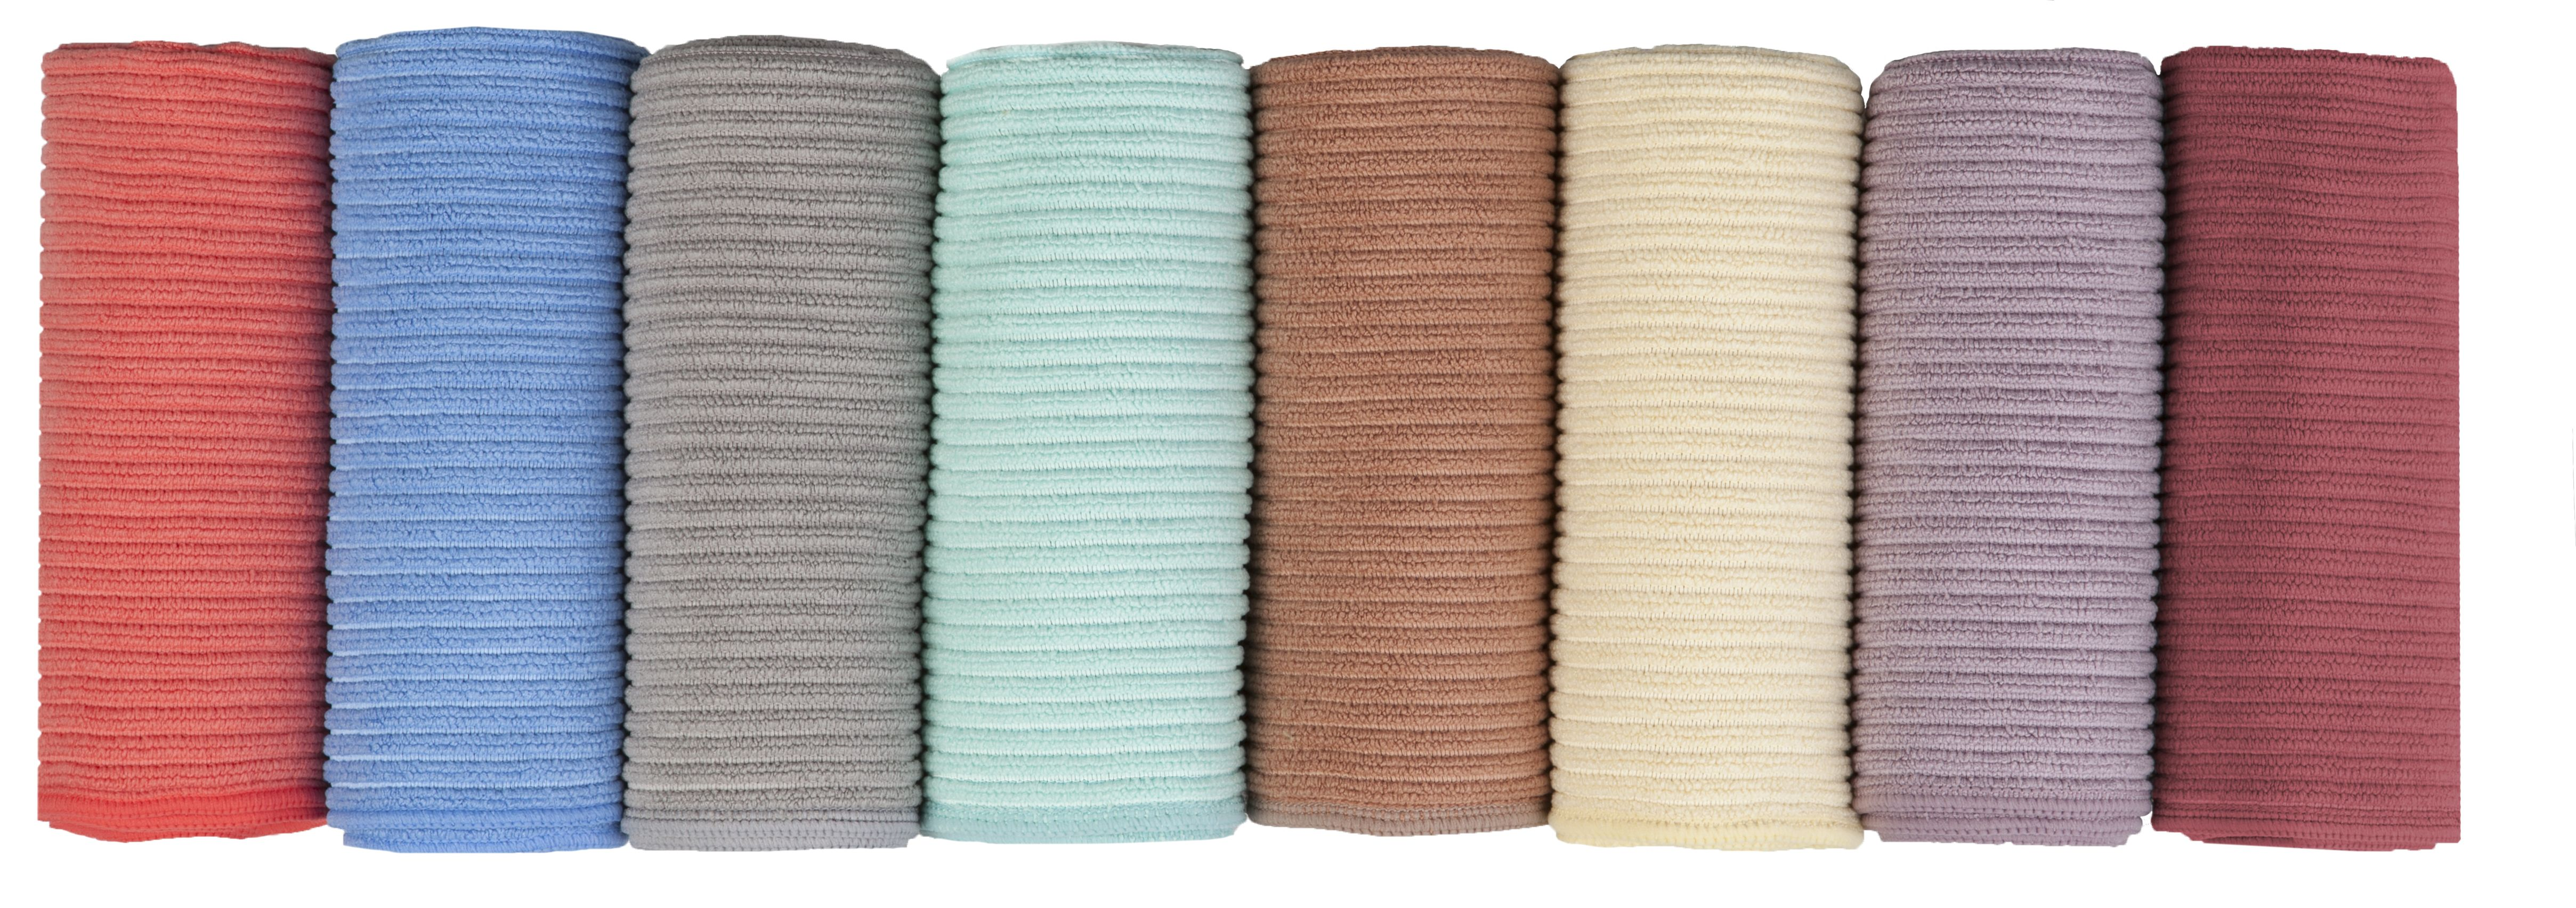 All Of The Norwex Kitchen Towel Colors How Do I Only Pick One Which One Is Your Favorite Www Christinecurcio Norwex Norwex Norwex Cleaning Norwex Australia